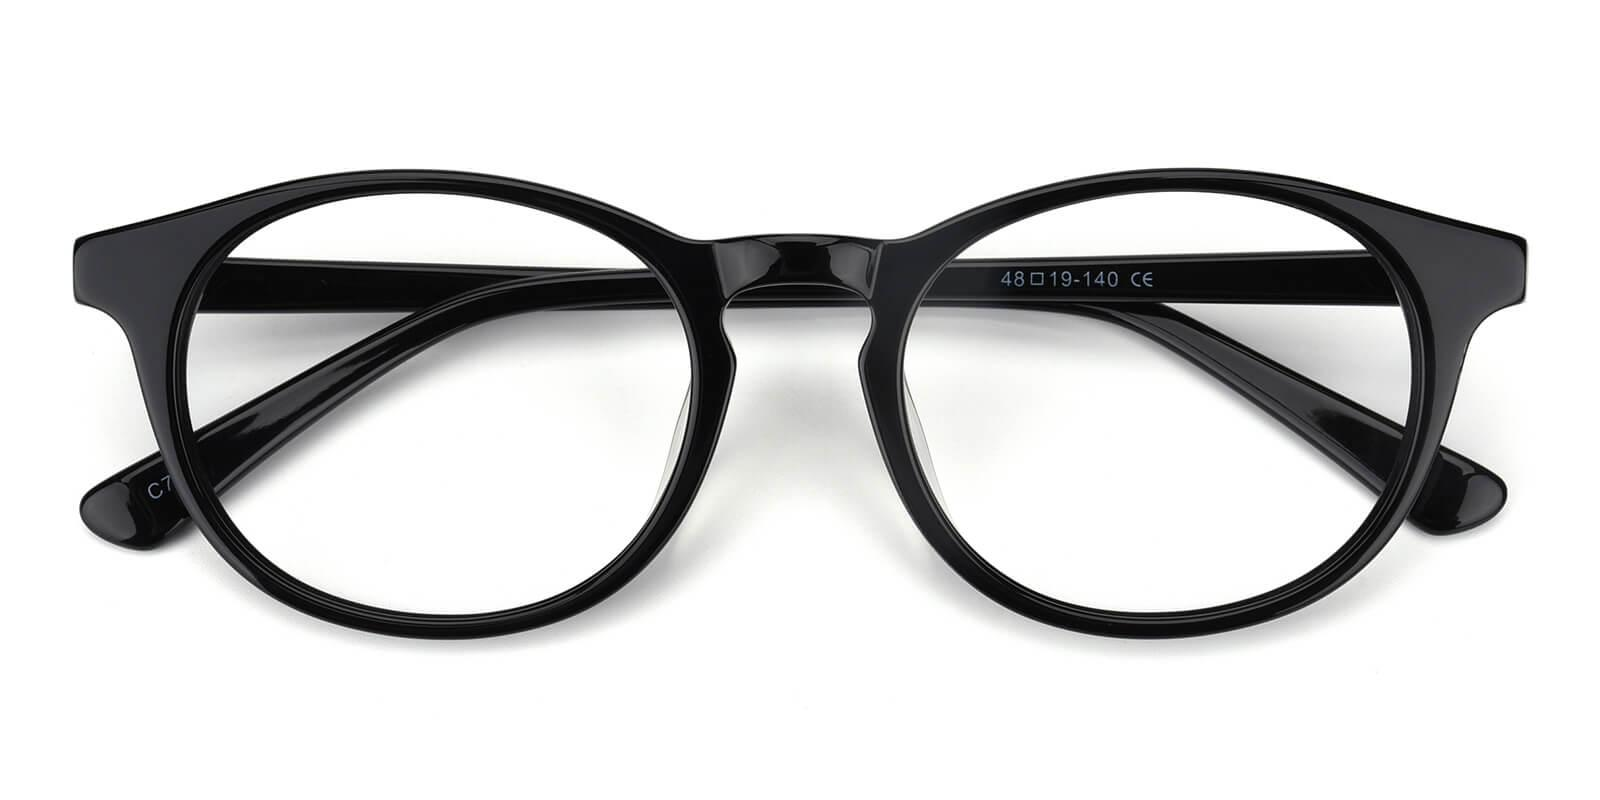 Concept-Black-Oval-Acetate-Eyeglasses-detail